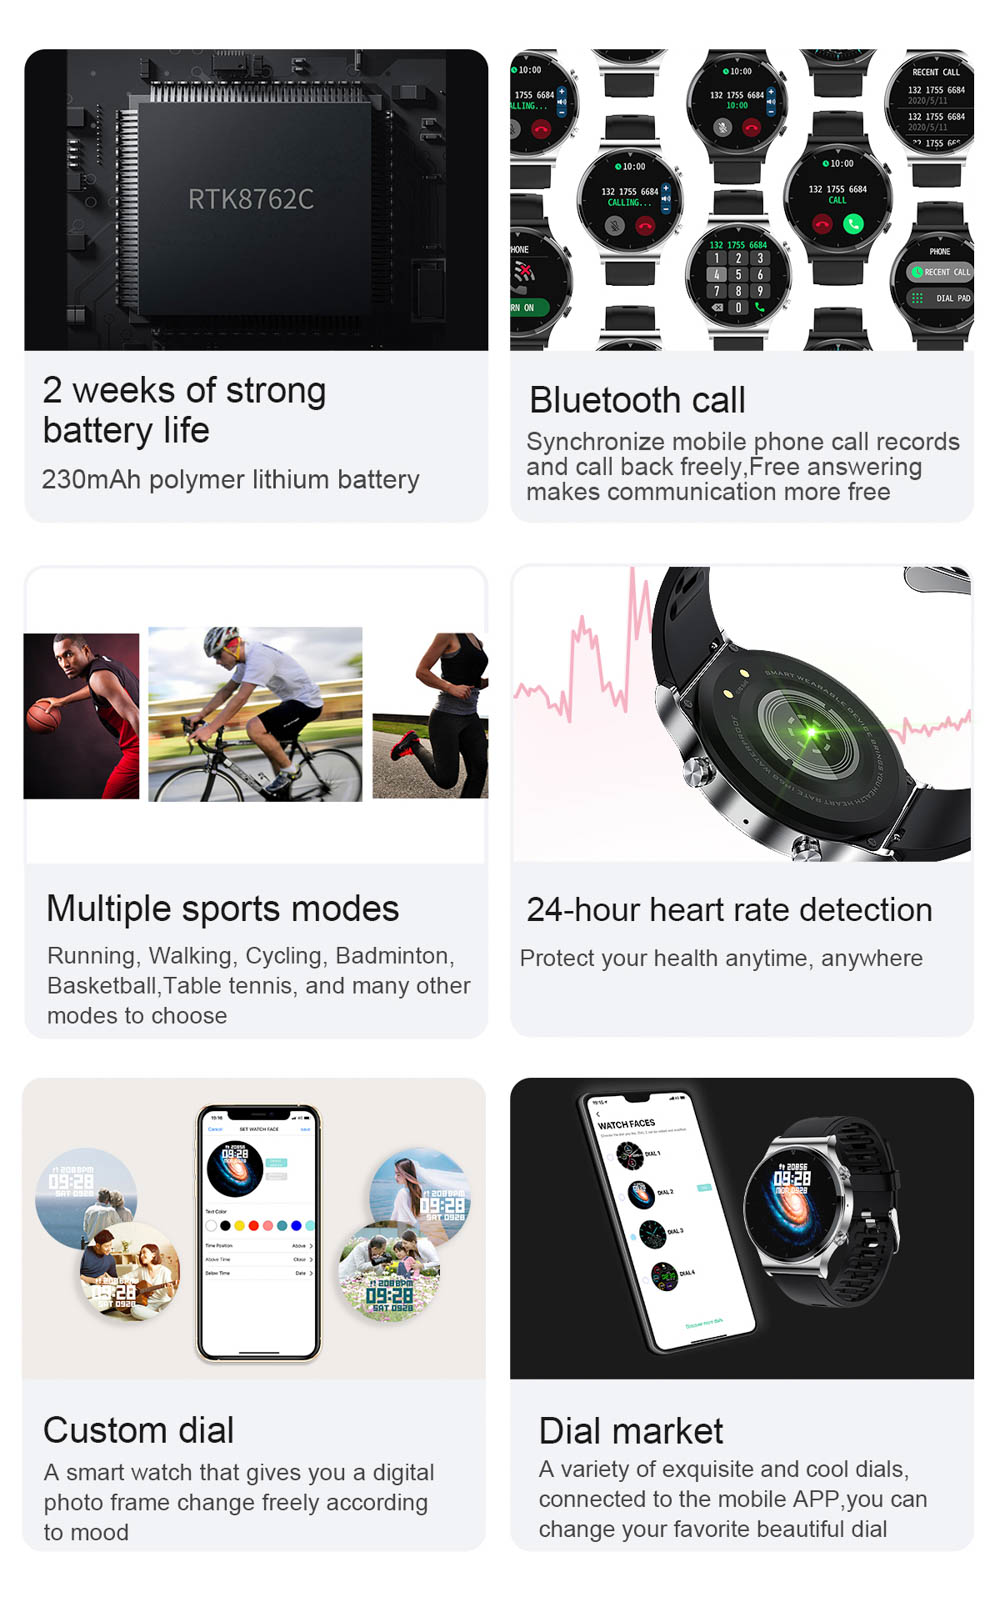 H668d2fa0220e4fb28479af11b831c9c4l NUOBO 2021 New Smart Watch Men Bluetooth Call Heart Rate Blood Pressure Sports IP68 Waterproof Smartwatch for Android IOS Phone